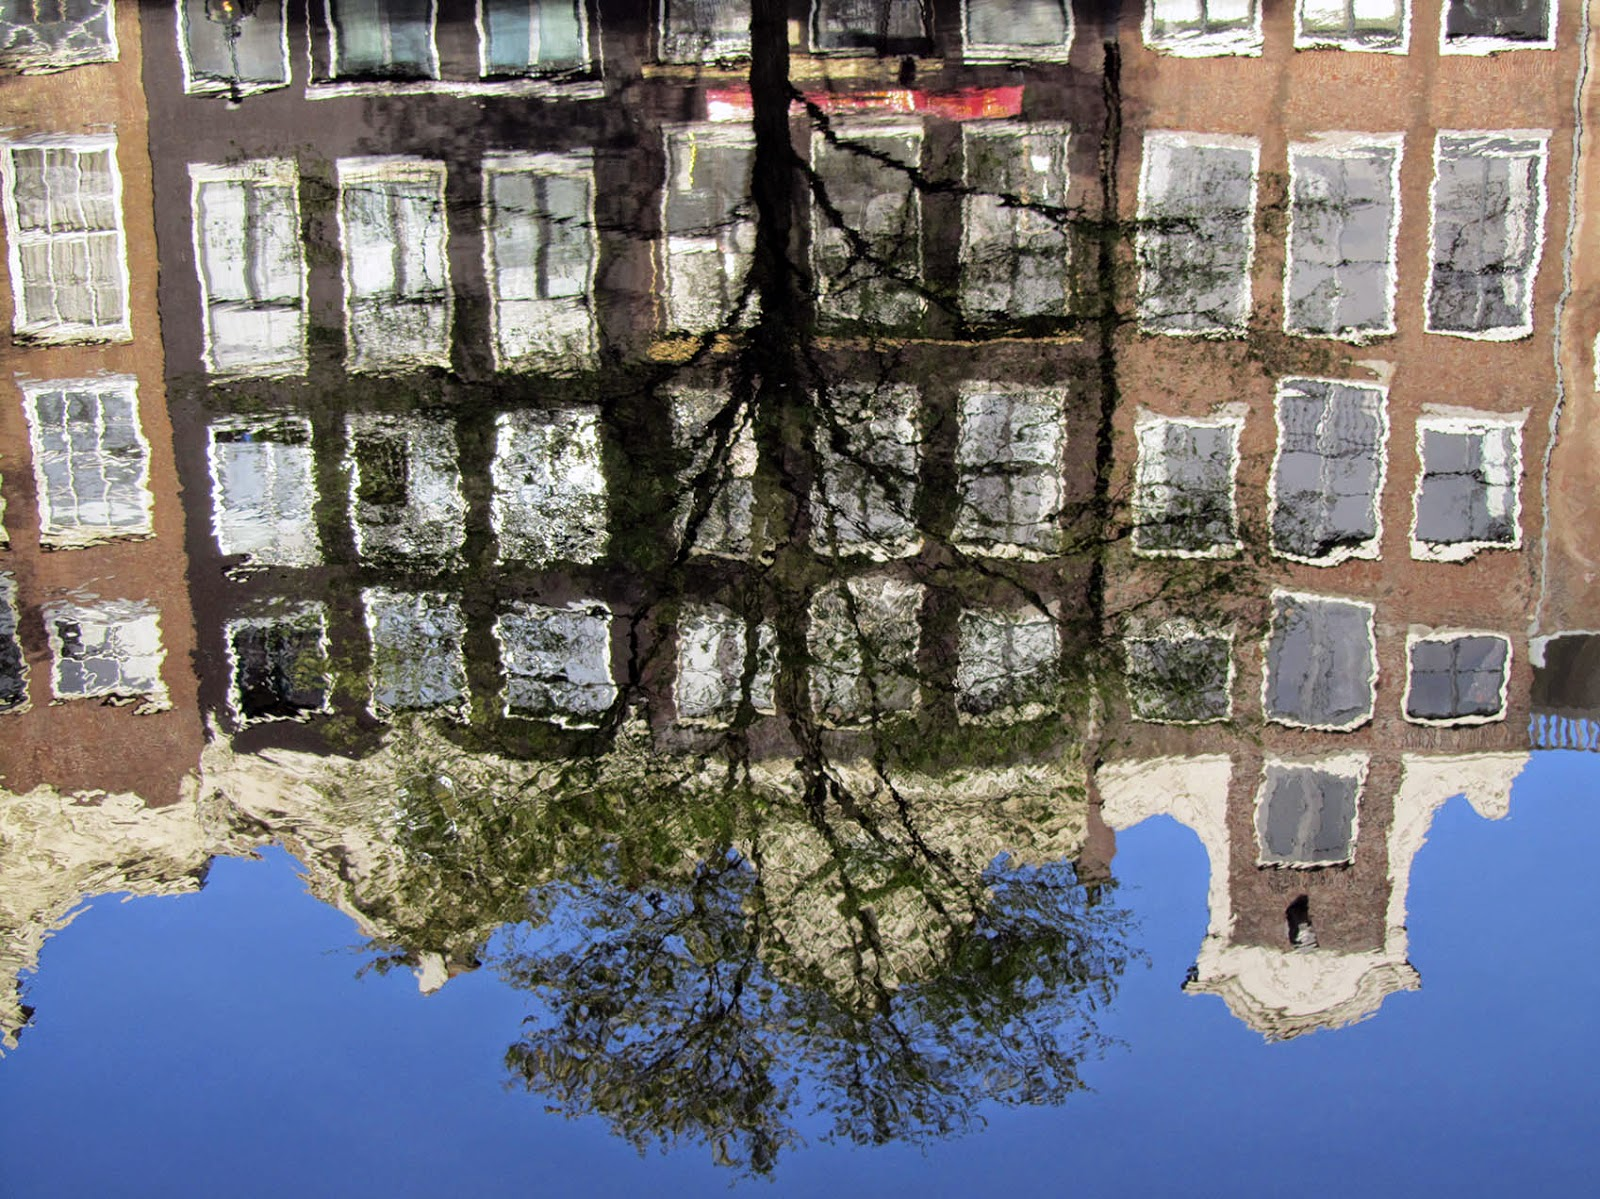 reflection of canal houses, Amsterdam